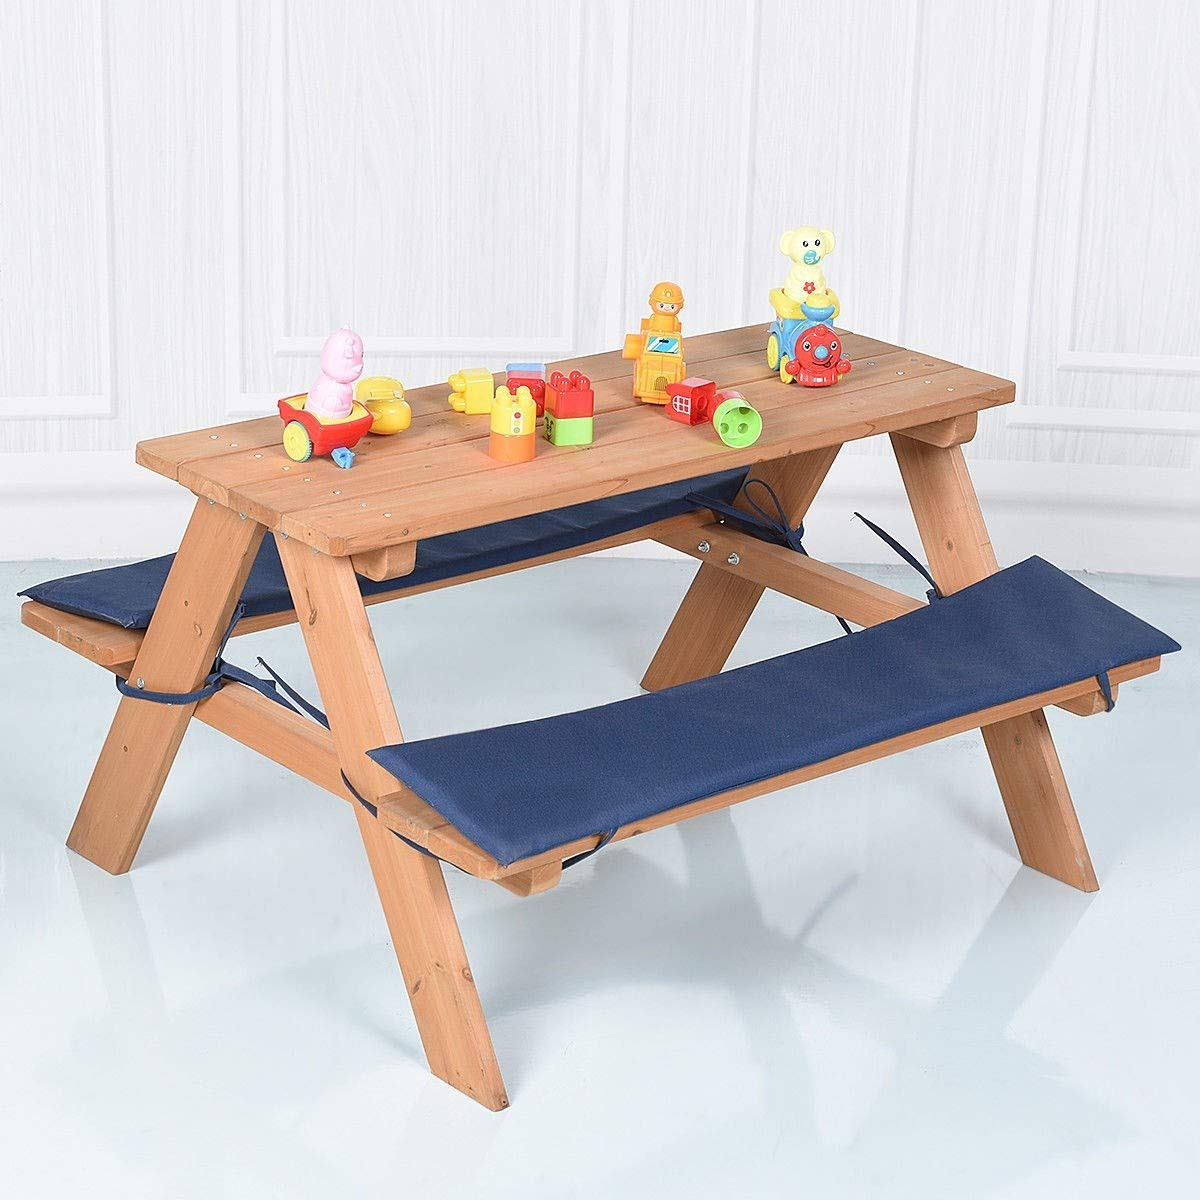 Custpromo Kids Wooden Table Bench Set with Cushion, Outdoor Table and Bench Set